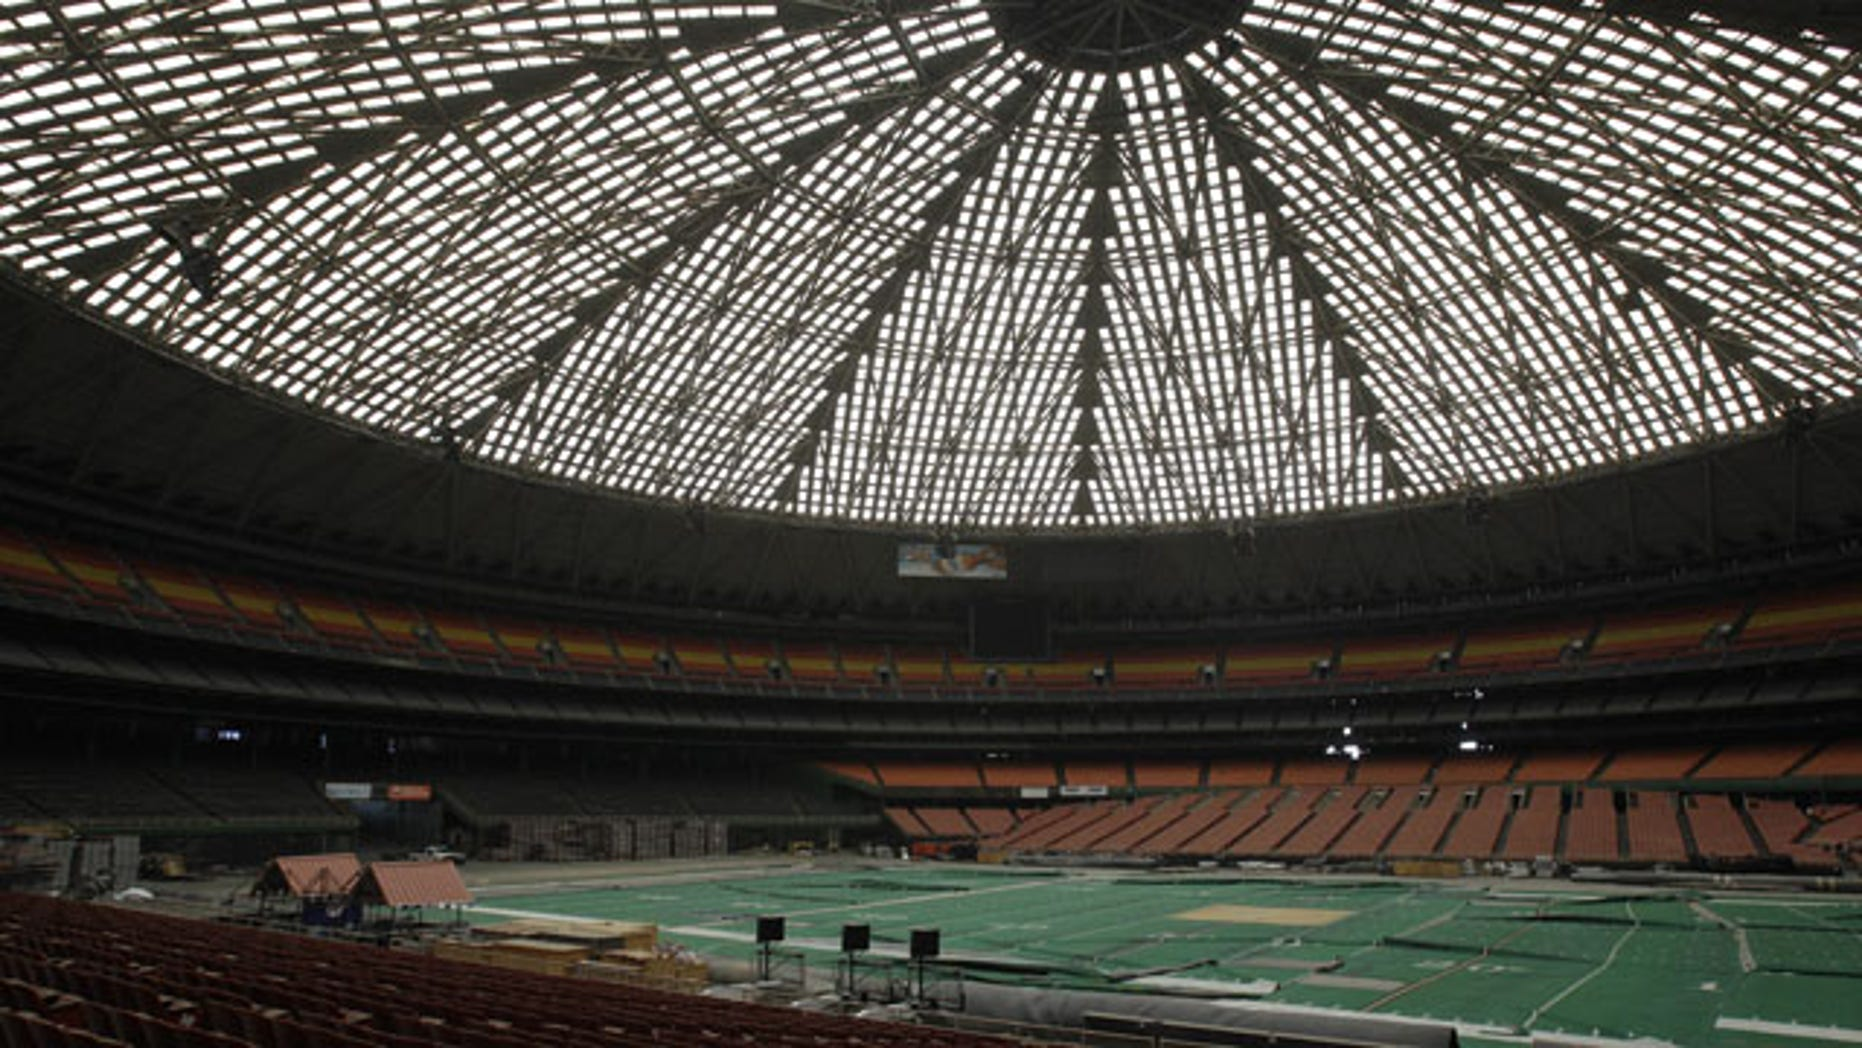 FILE- In this May 21, 2012 file photo, the Astrodome sits gathering dust and items for storage in Houston. (AP Photo)